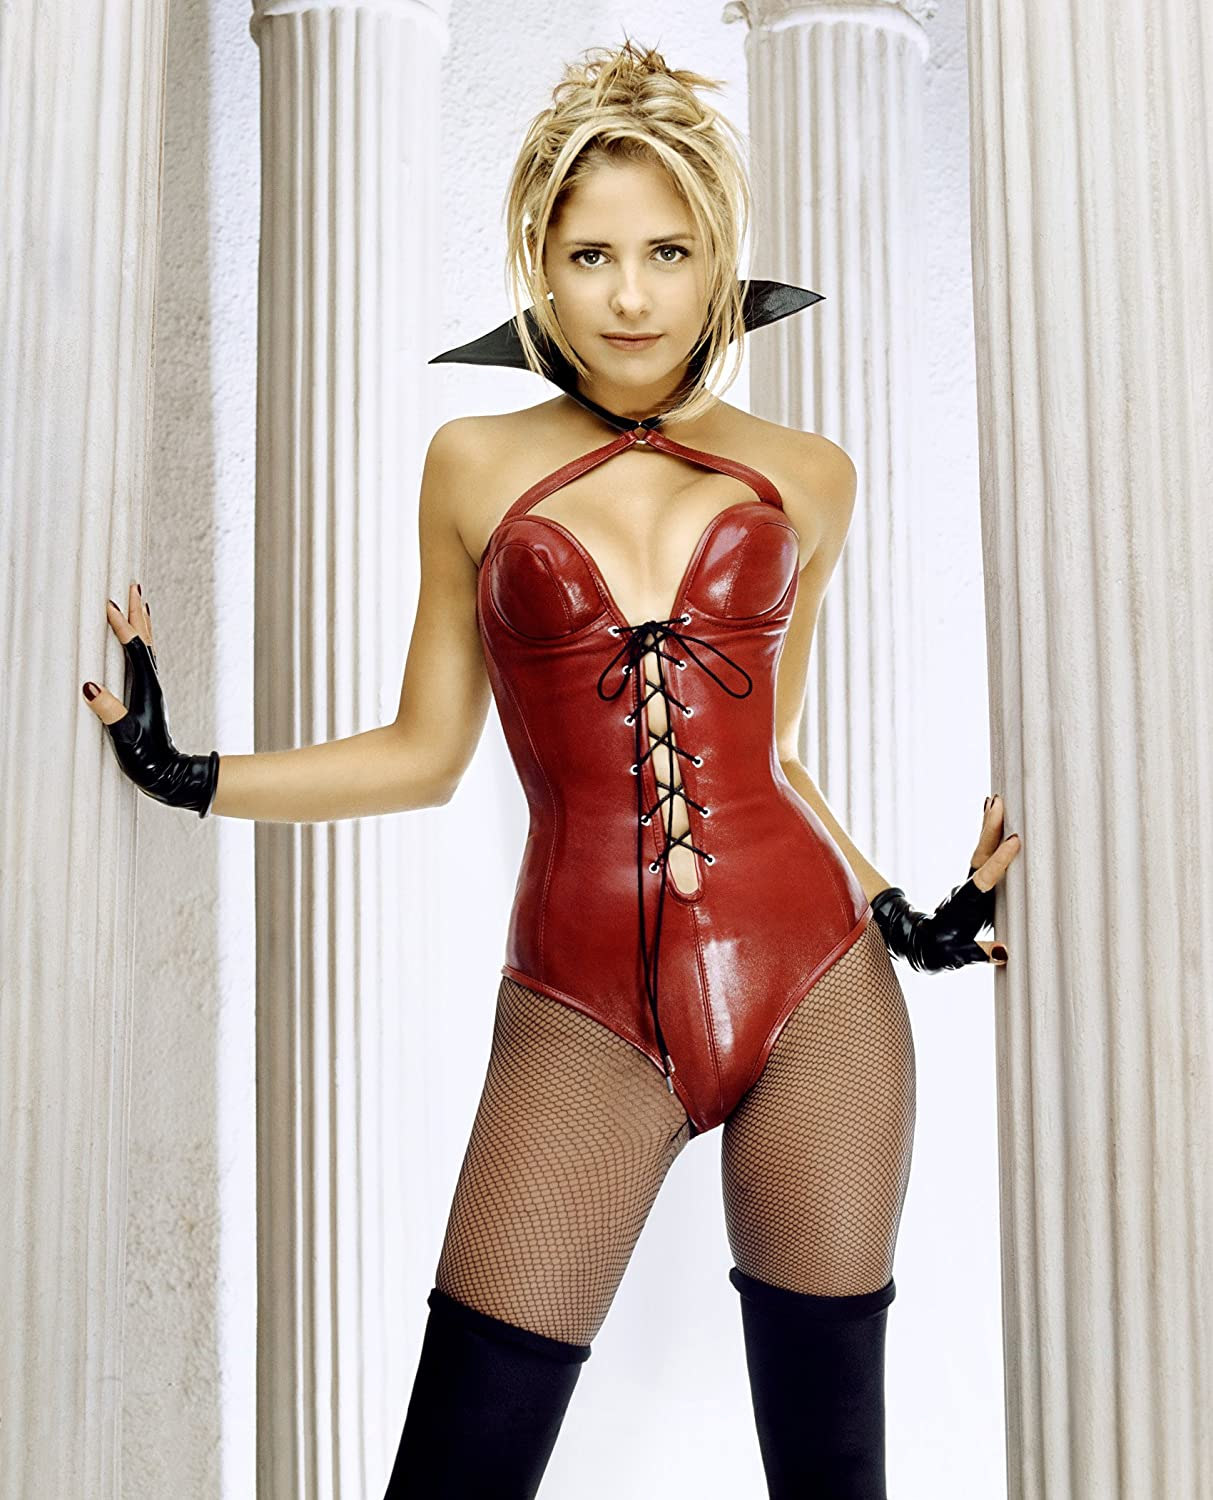 Sarah Michelle Geller Red Latex Lingerie Mid Modeling Photo 8 Inch By 10 Photograph Tl At Amazons Entertainment Collectibles Store